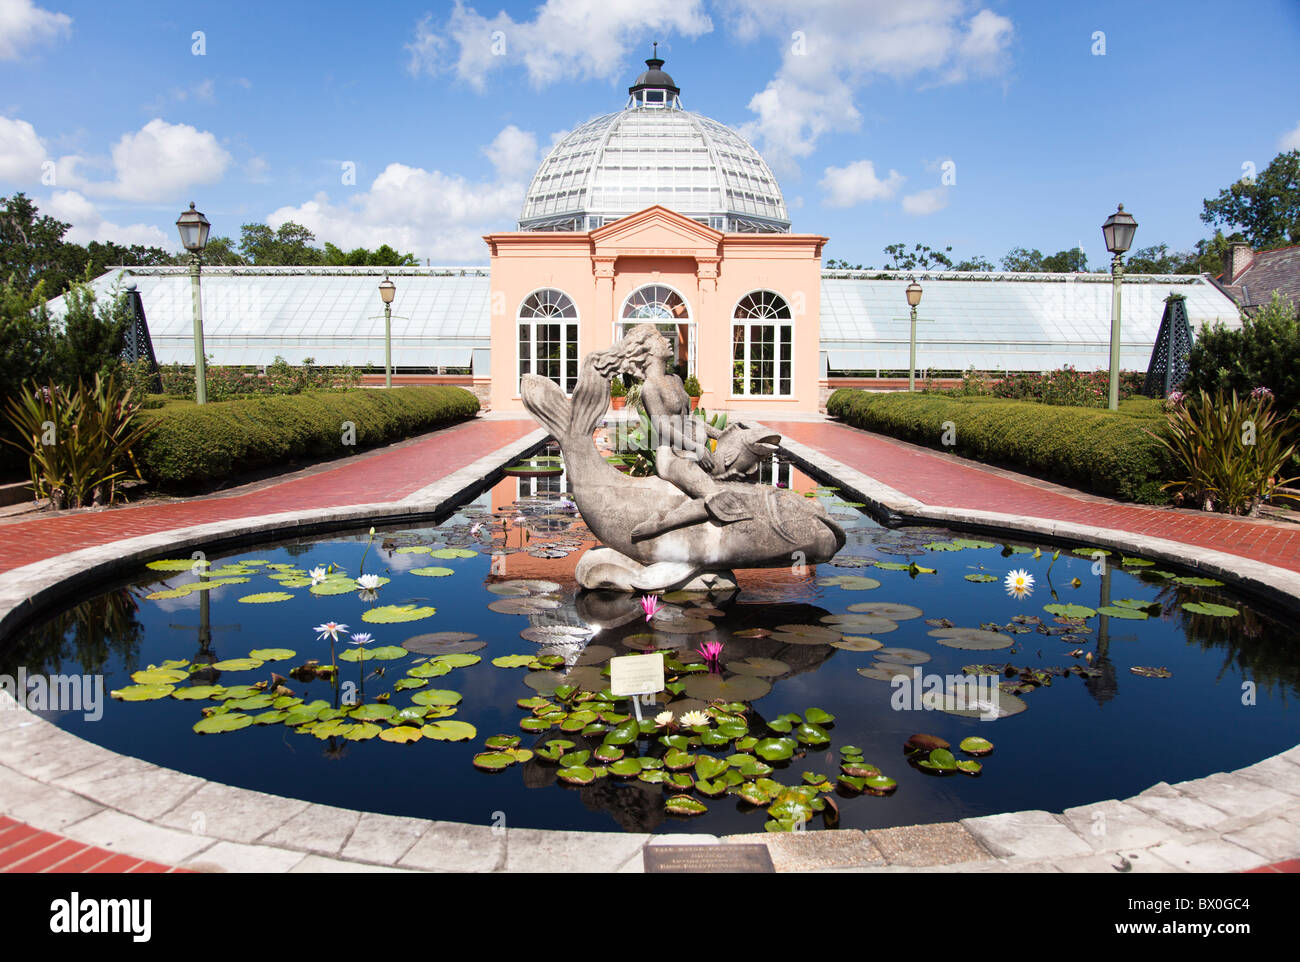 Genial Since 1936, The New Orleans Botanical Garden In Louisiana (originally The  City Park Rose